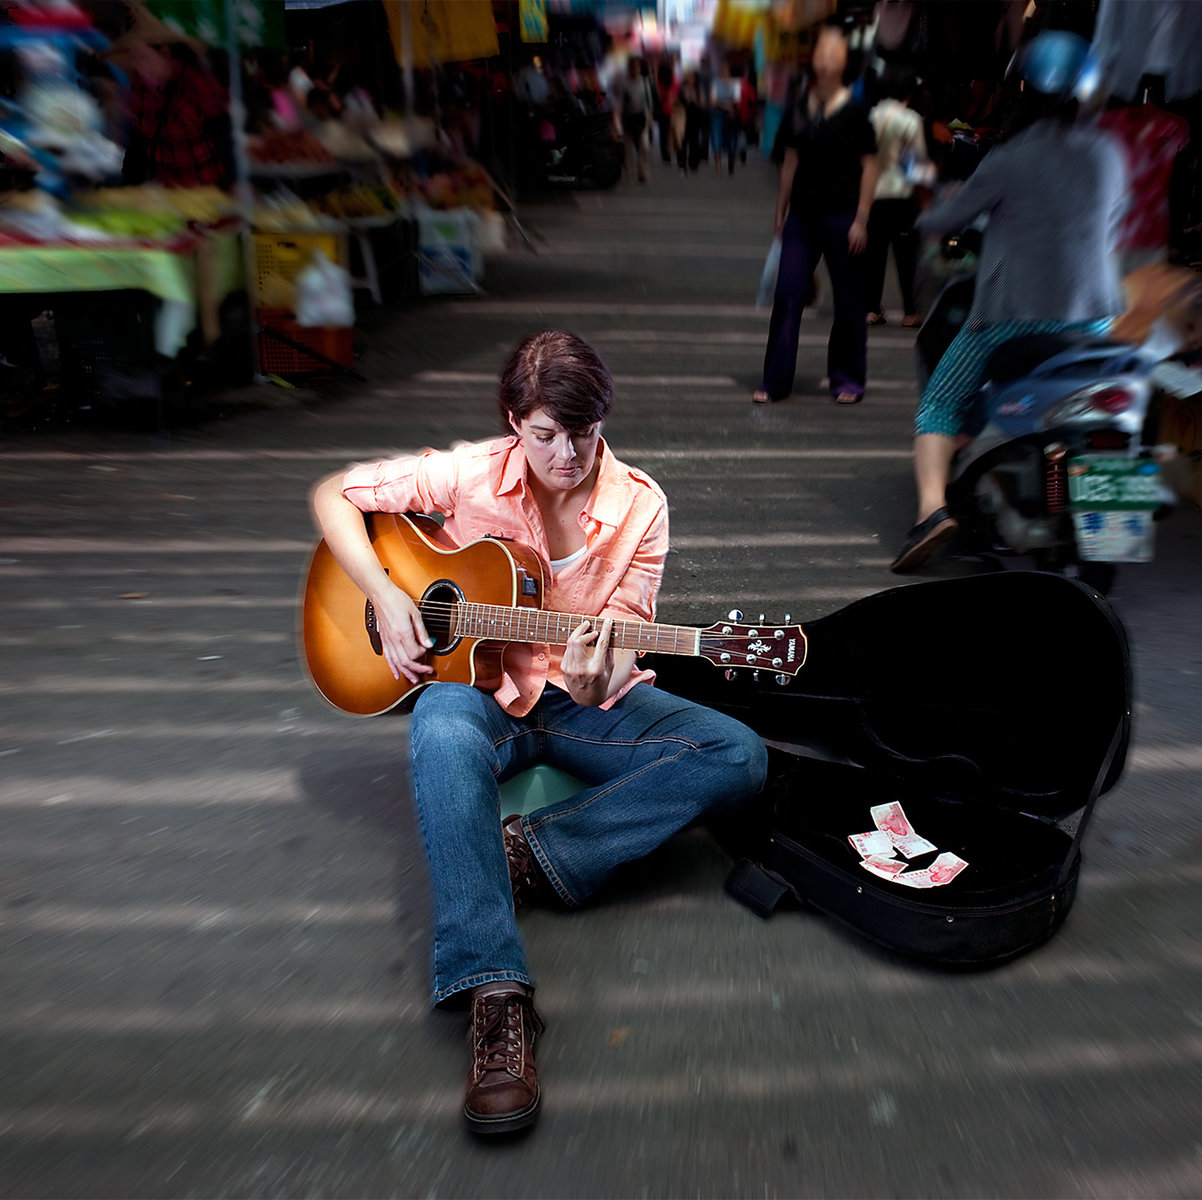 Busking in a far away land.  Travel, music, entertaining, making money- life is great!